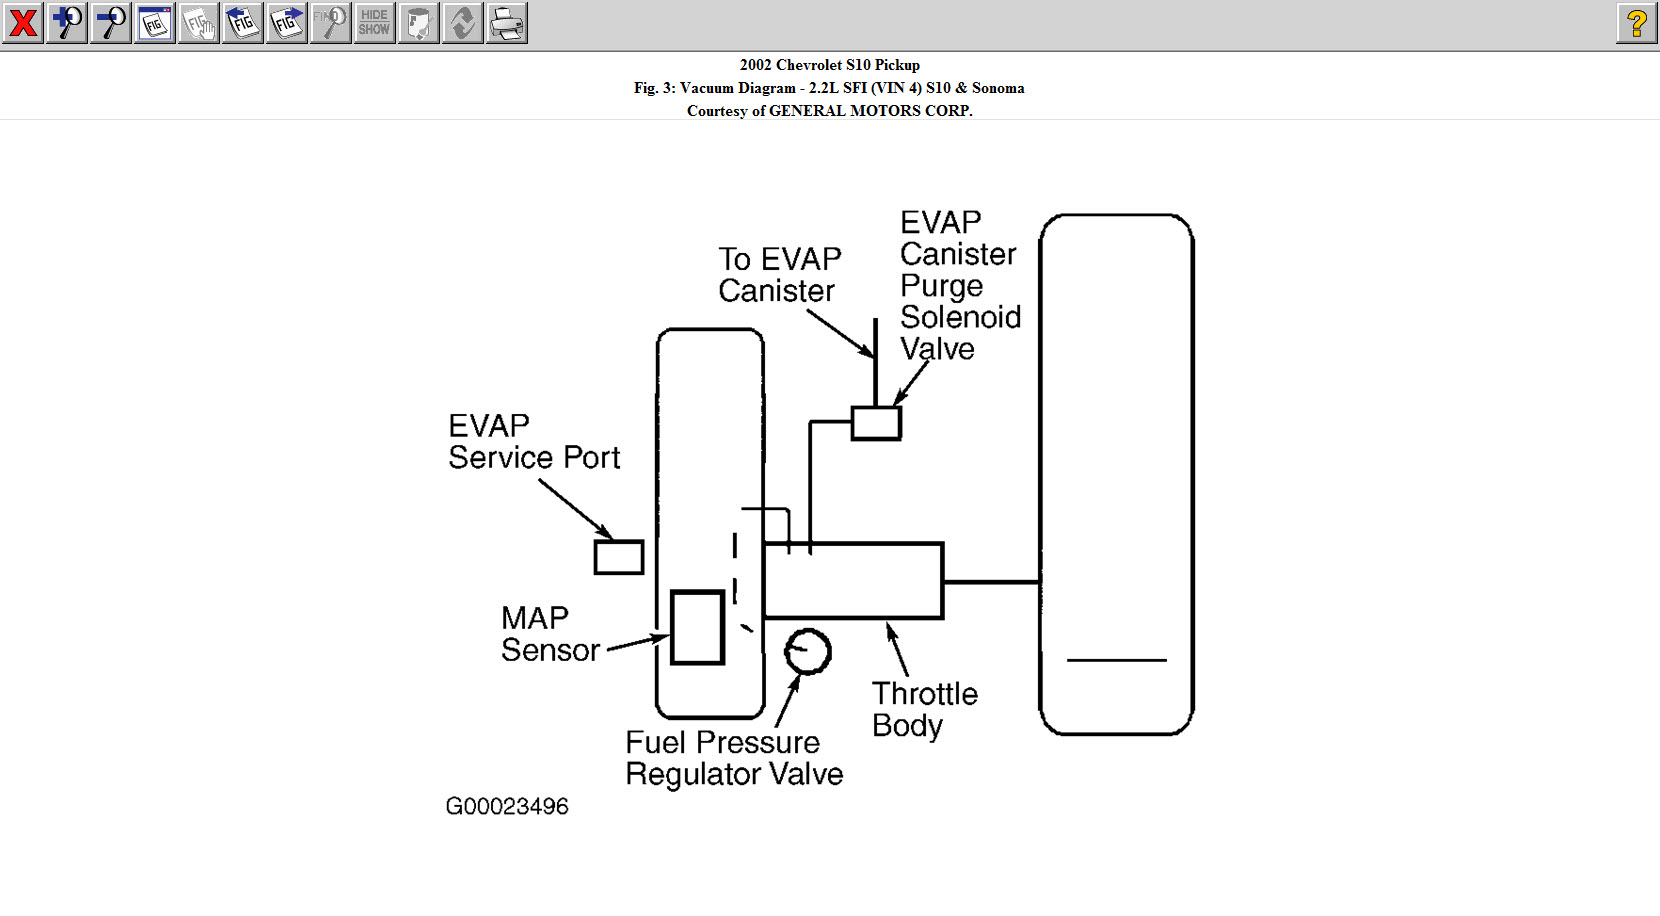 Vacuum System Diagram Vacuum System Diagram For Chevrolet